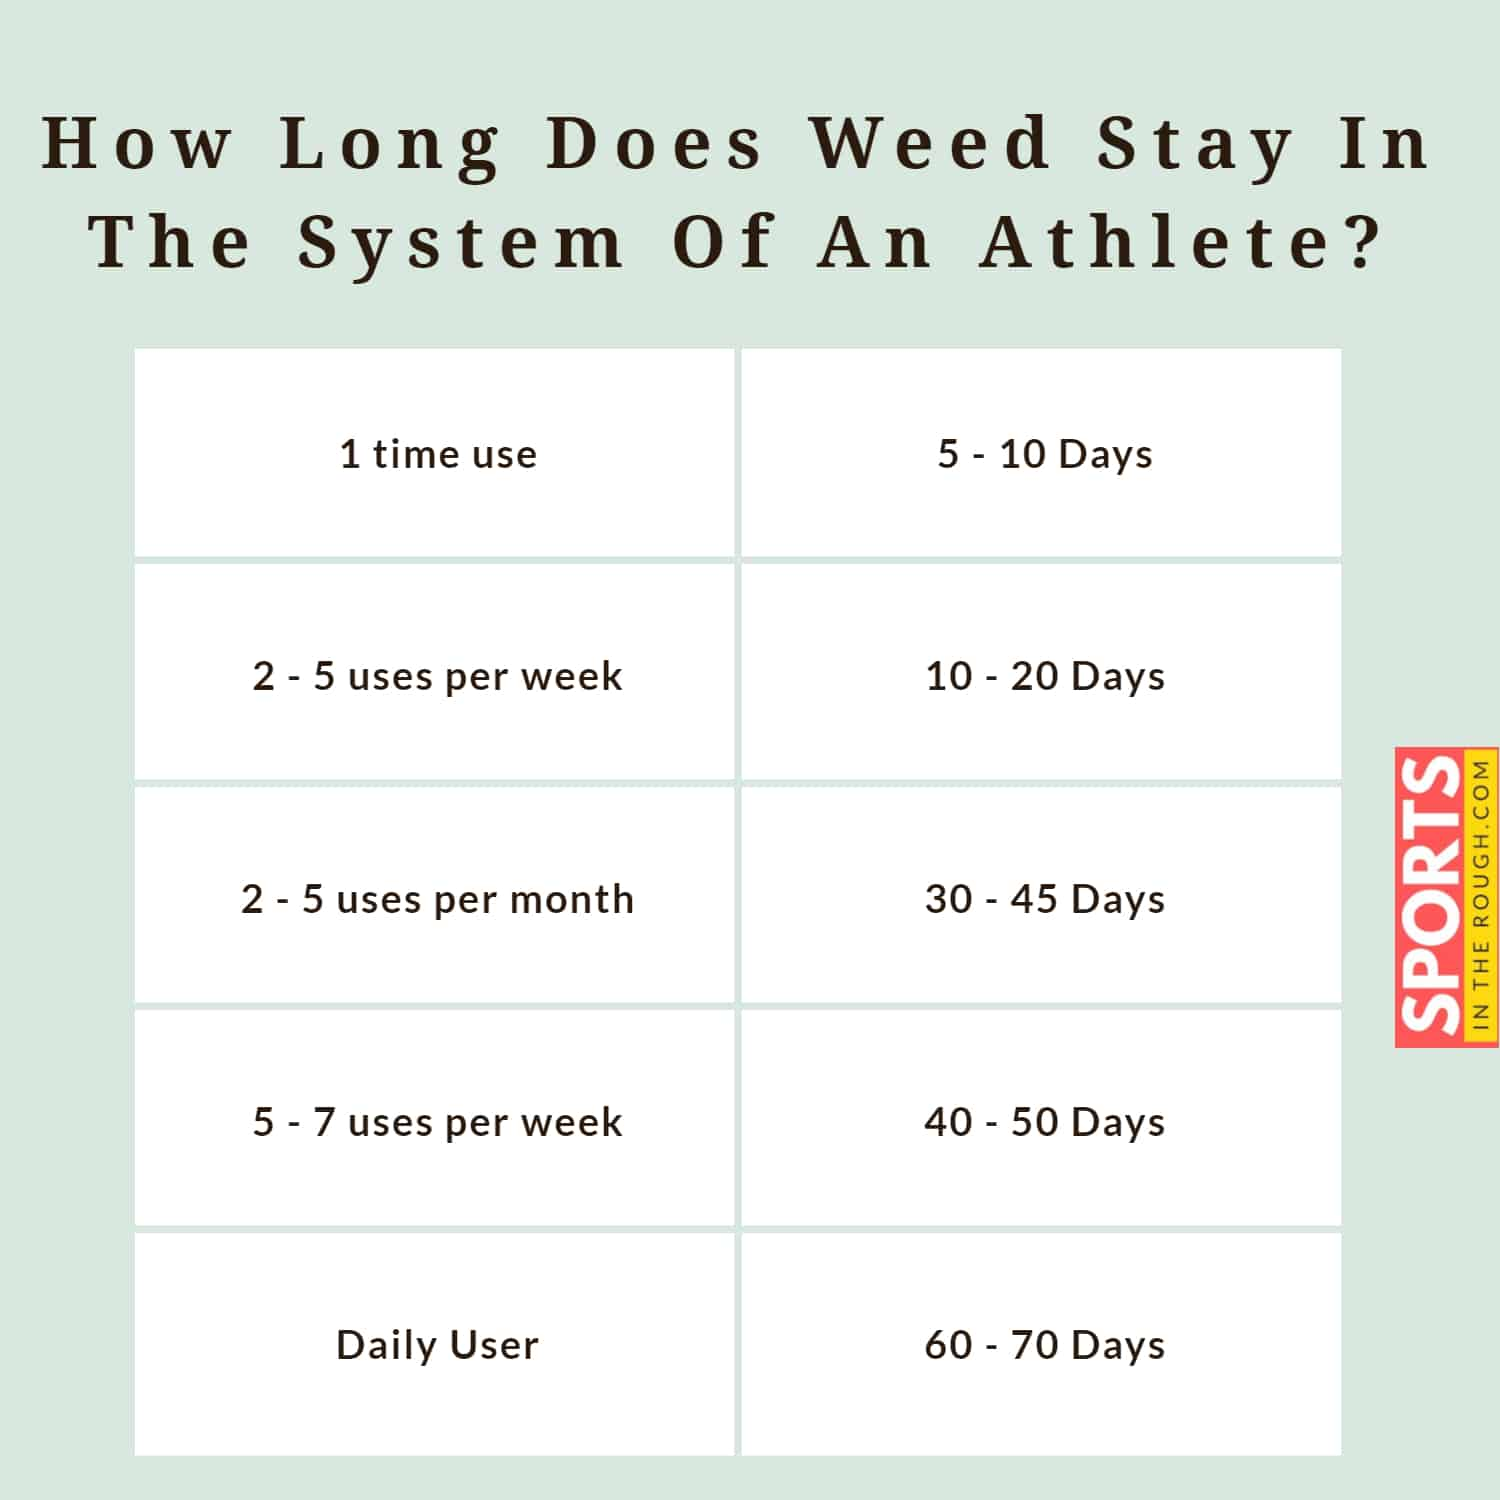 how long does weed stay in the system of an athlete